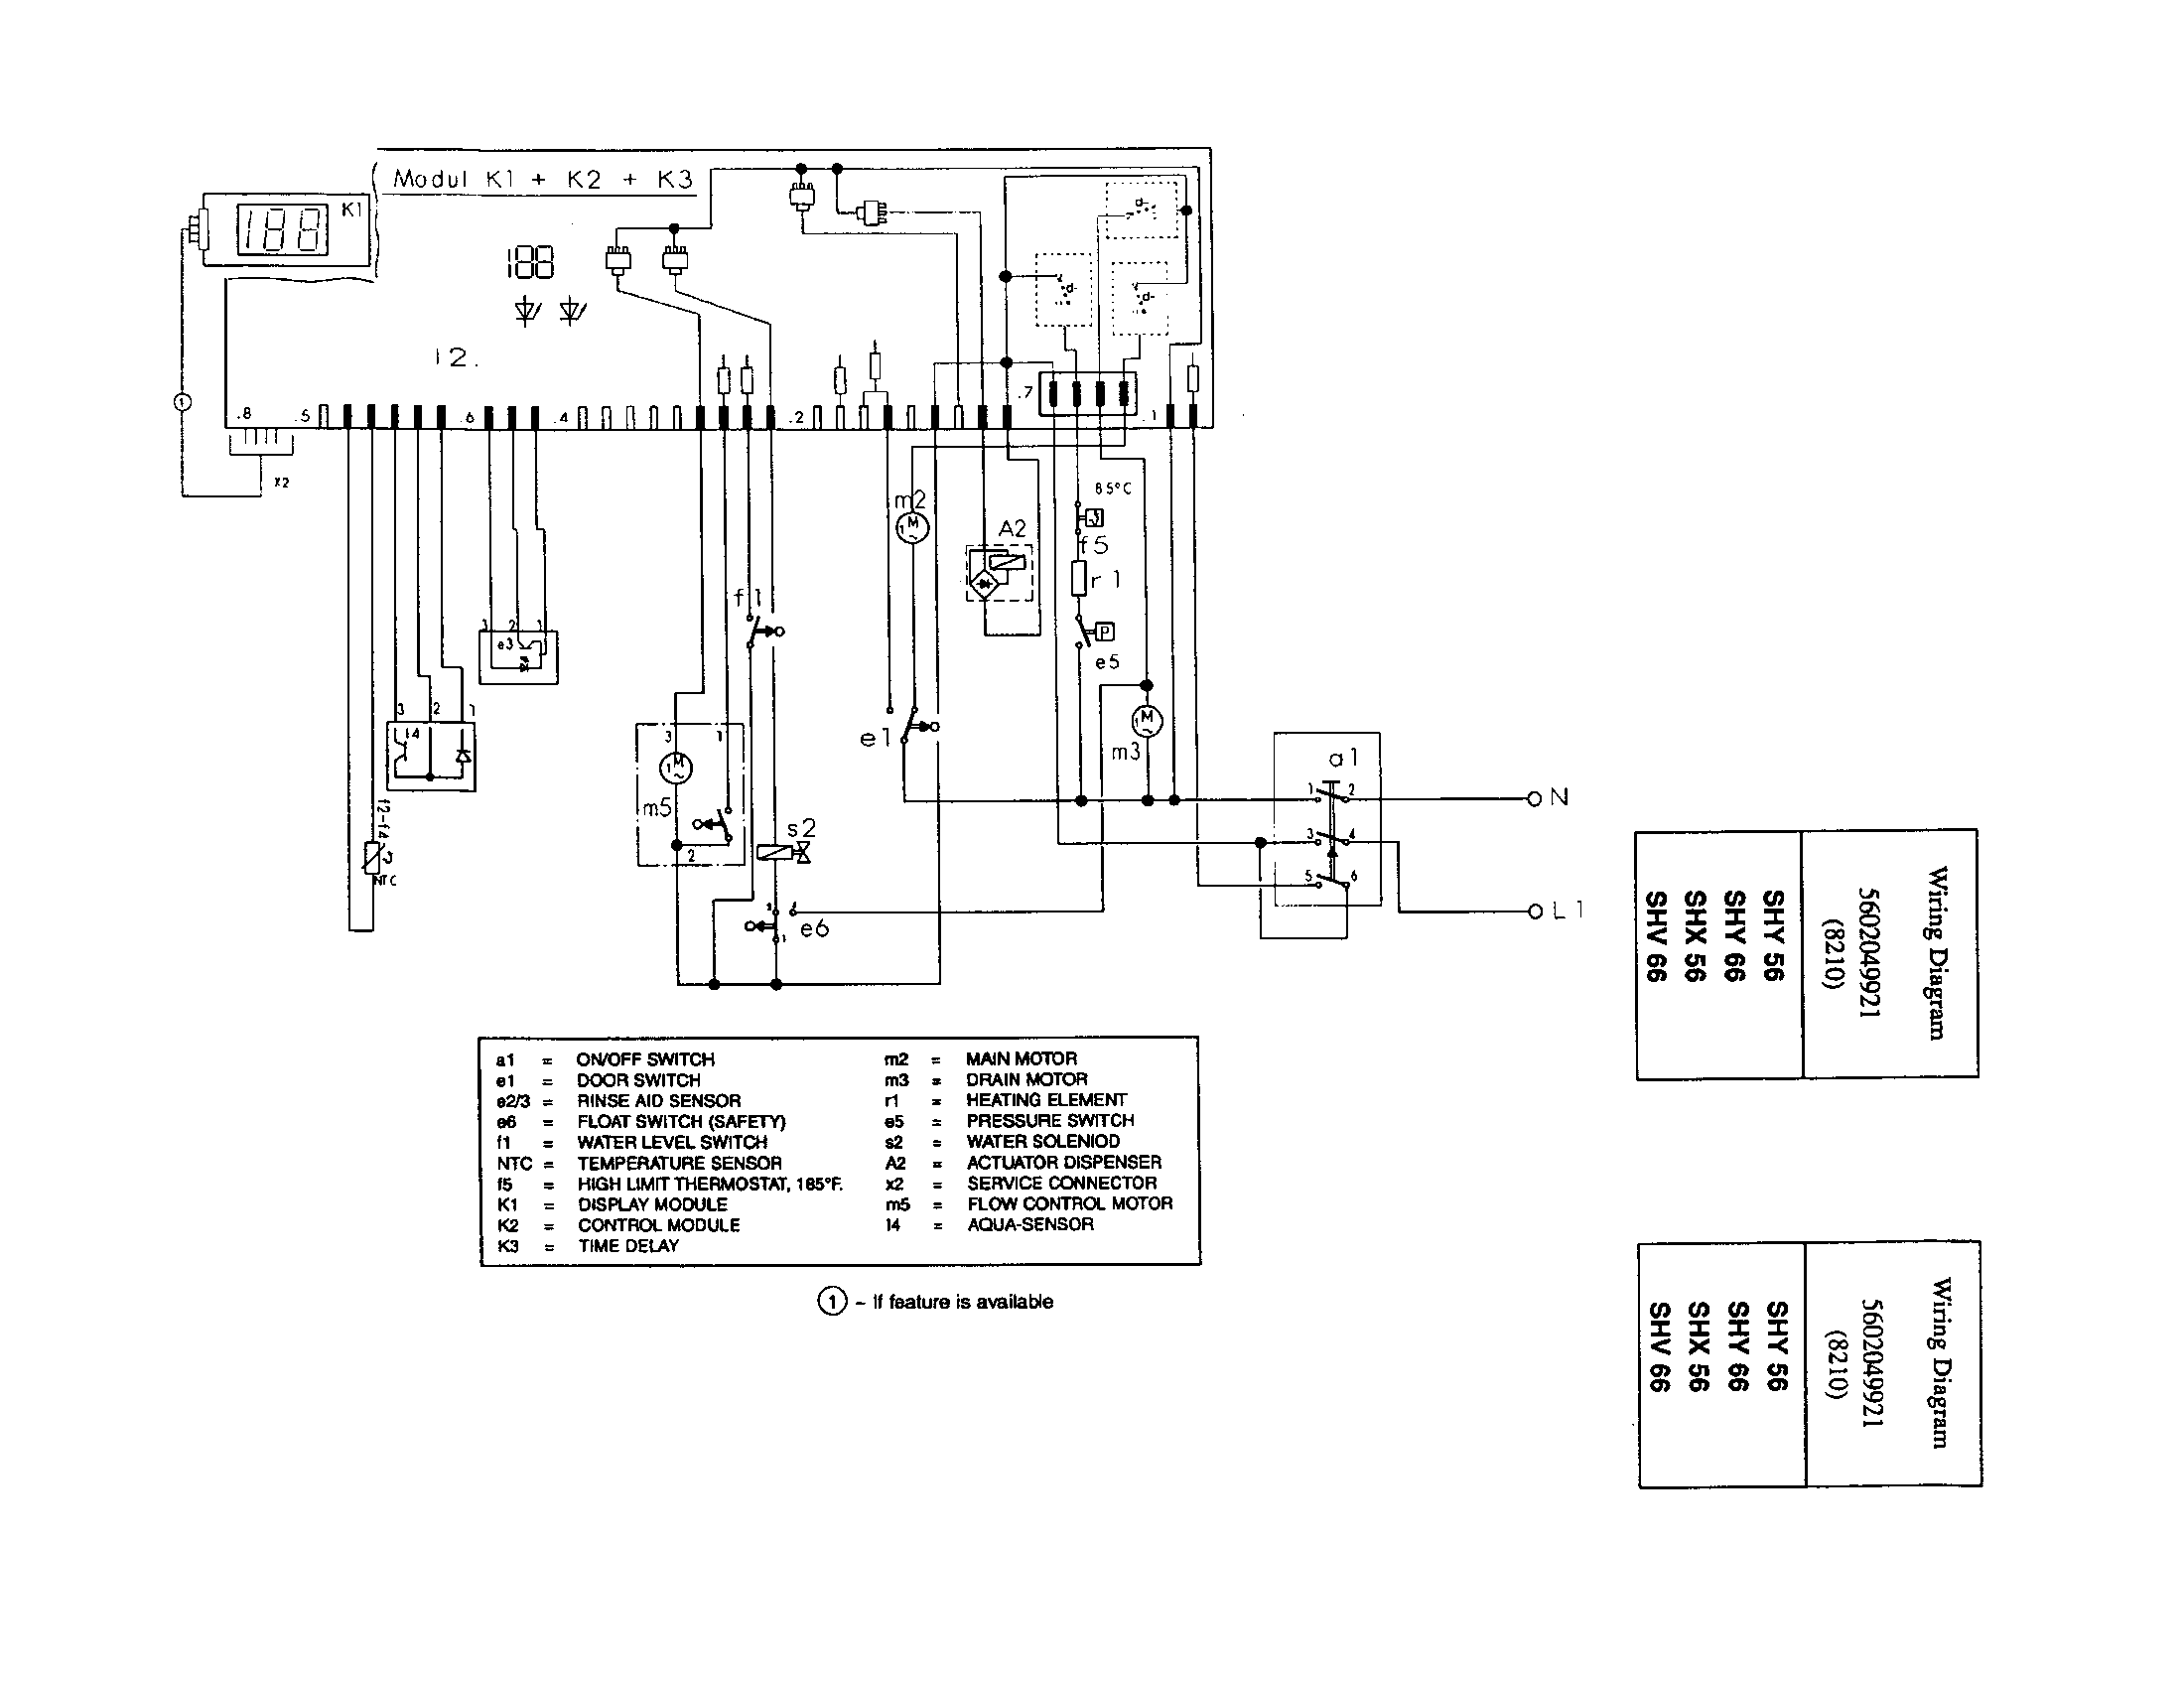 Amana Dishwasher Wiring Diagram